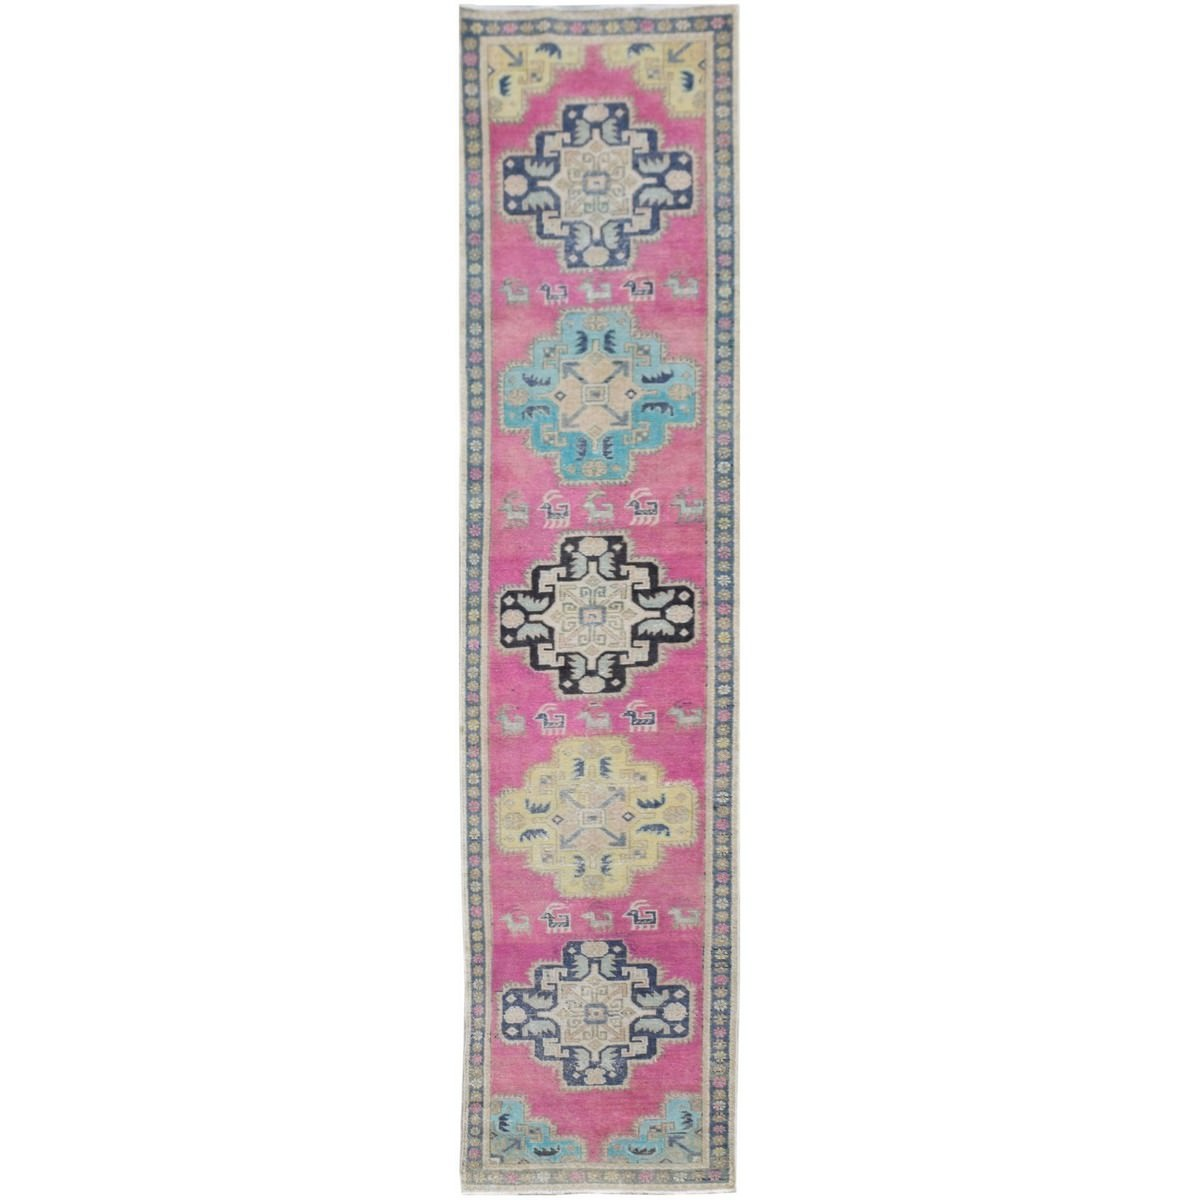 One of A Kind Macias Hand Knotted Wool Persian Runner Rug, 339x66cm